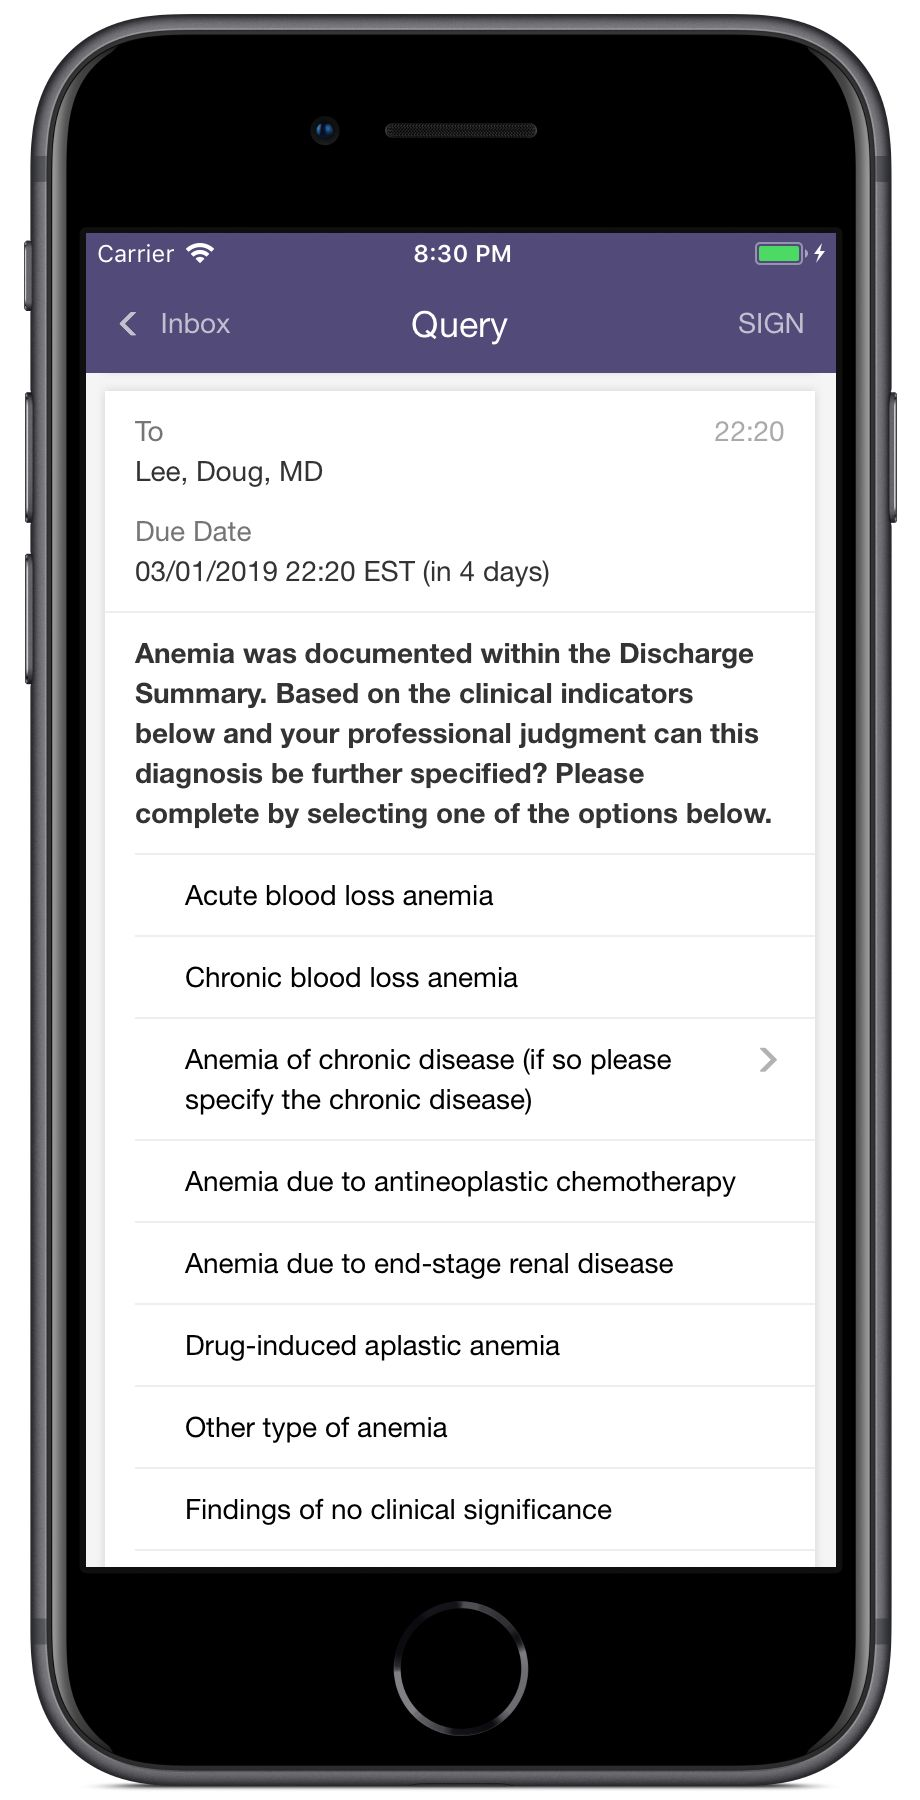 AHIMA templates combined with Artifact Health mobile solution allow physicians to answer queries in seconds